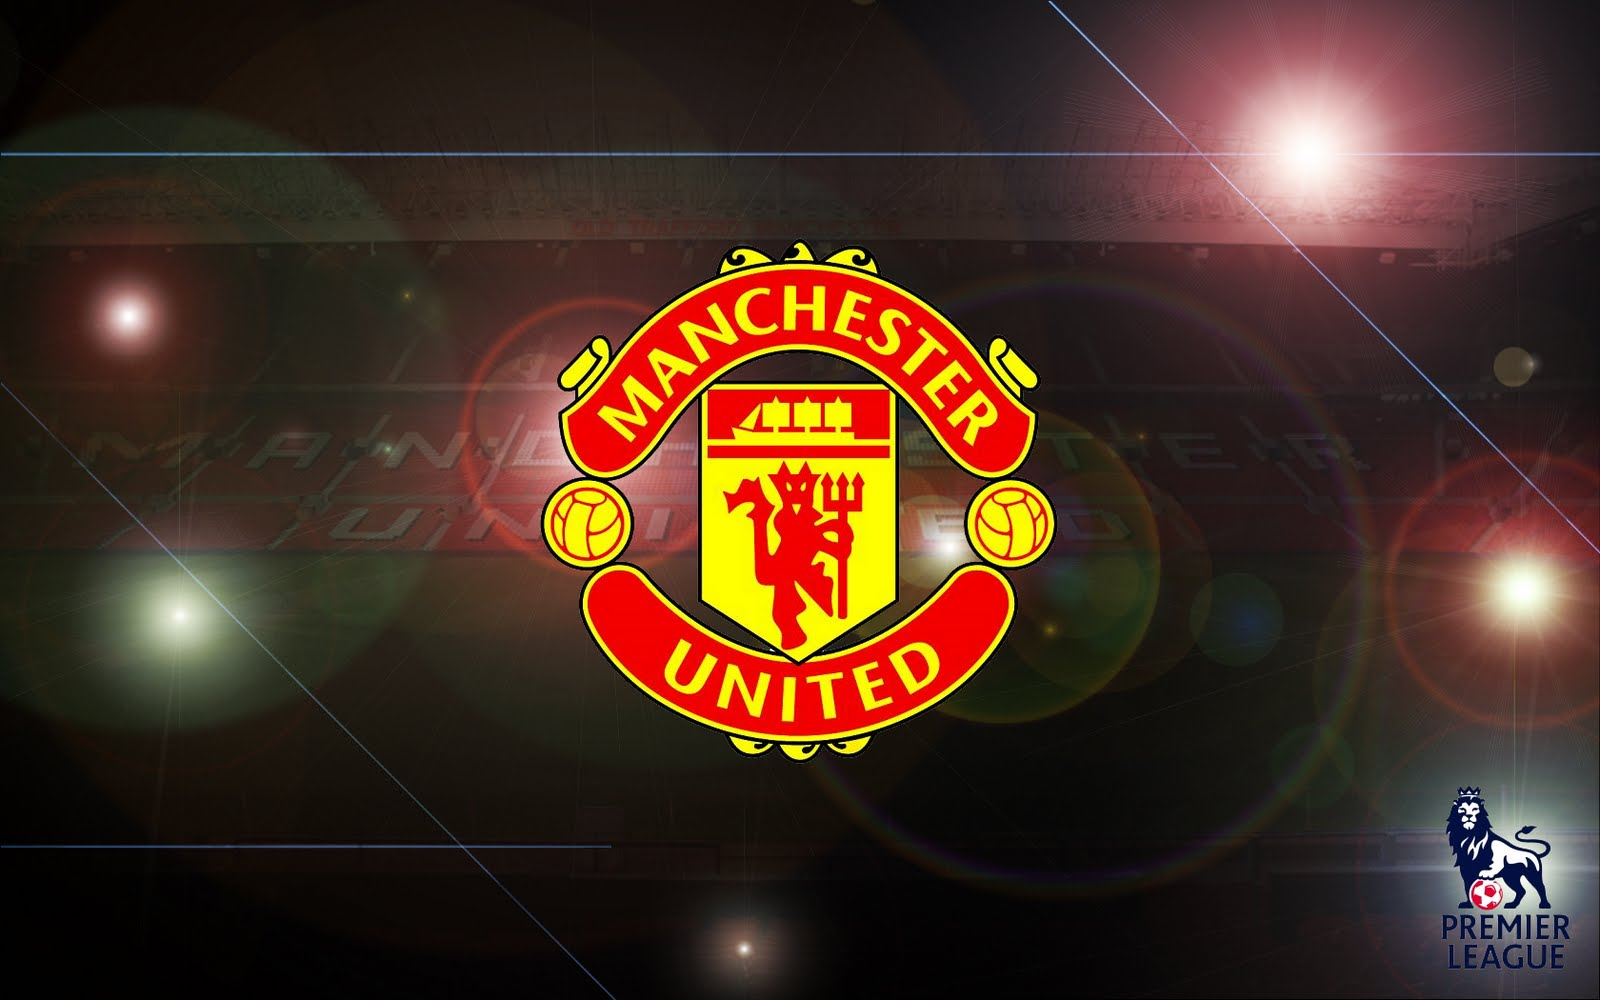 wallpaper manchester united wallpaper 1 manchester united wallpaper 2 1600x1000